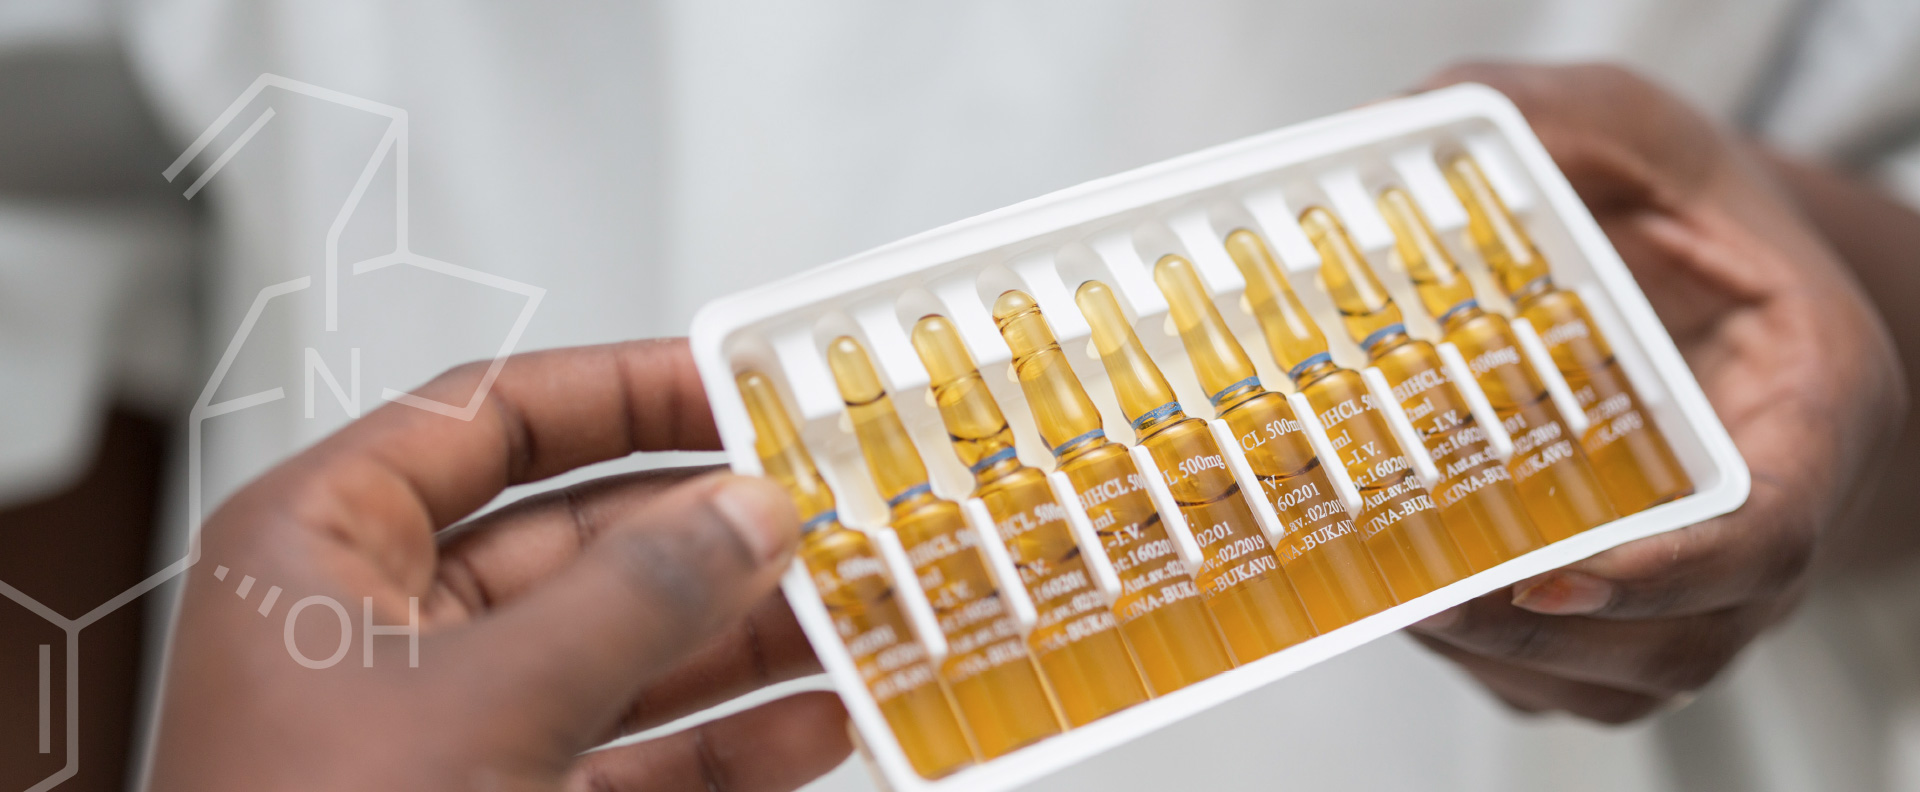 Pharmakina produces finished pharmaceutical products (FPP) liek these Ampoules of Injectable QUININE BICHLORHYDRATE for the domestic and regional market around Bakavu in the DRC.